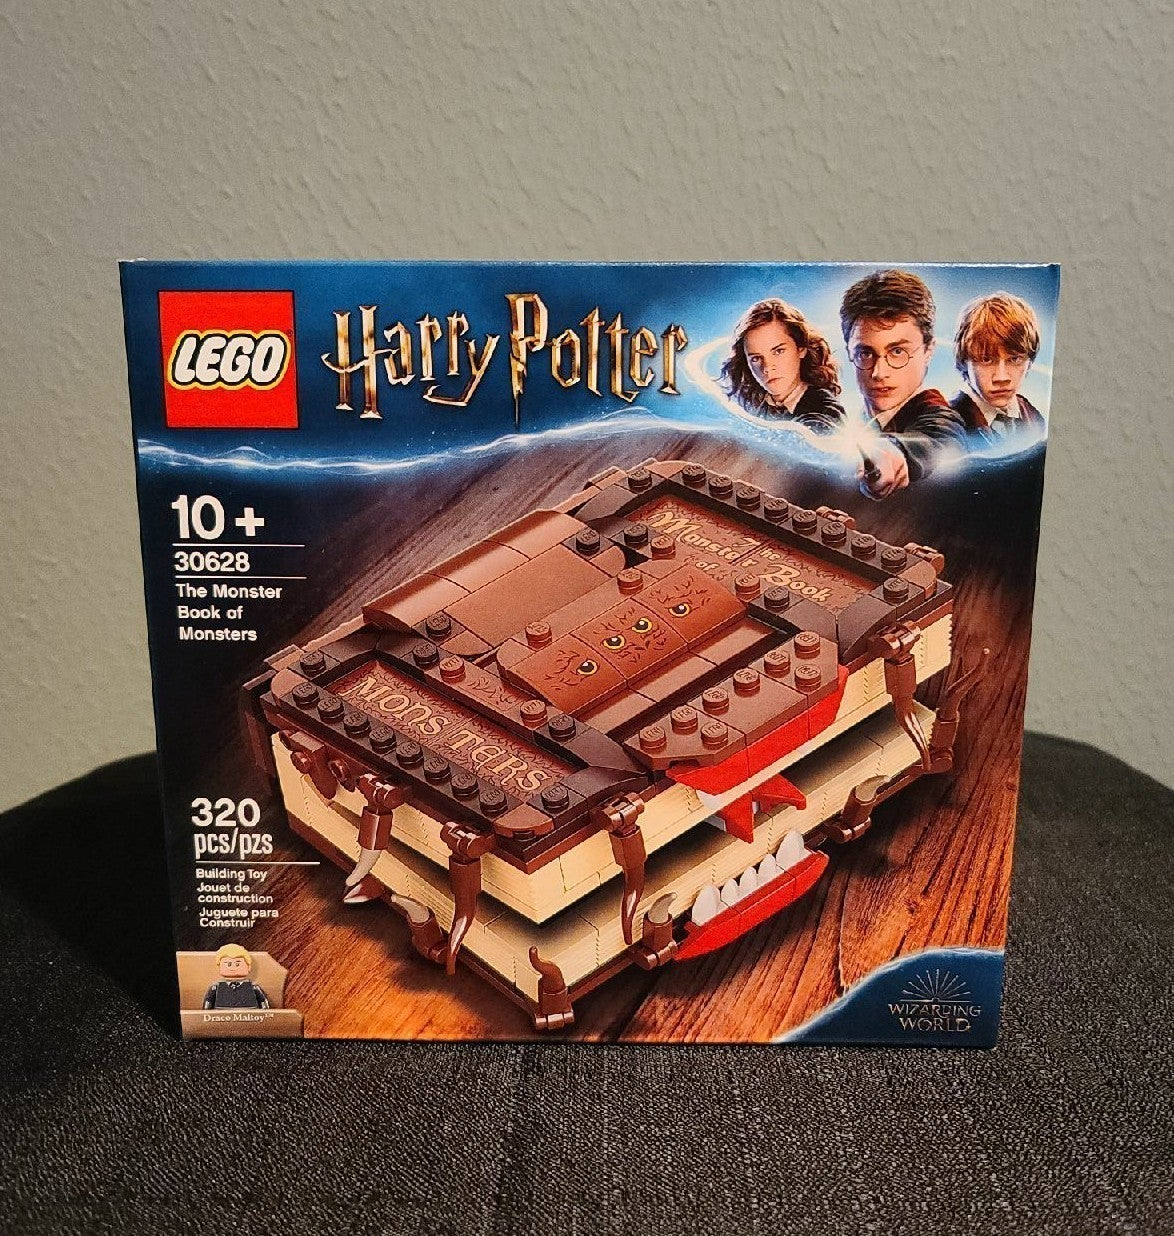 LEGO Harry Potter Book of Monsters 30628